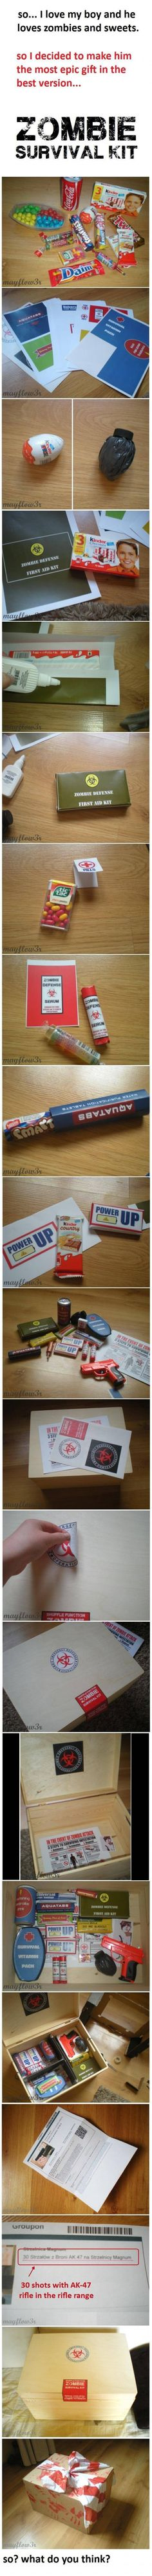 """candy zombie survival kit..."""":')"""